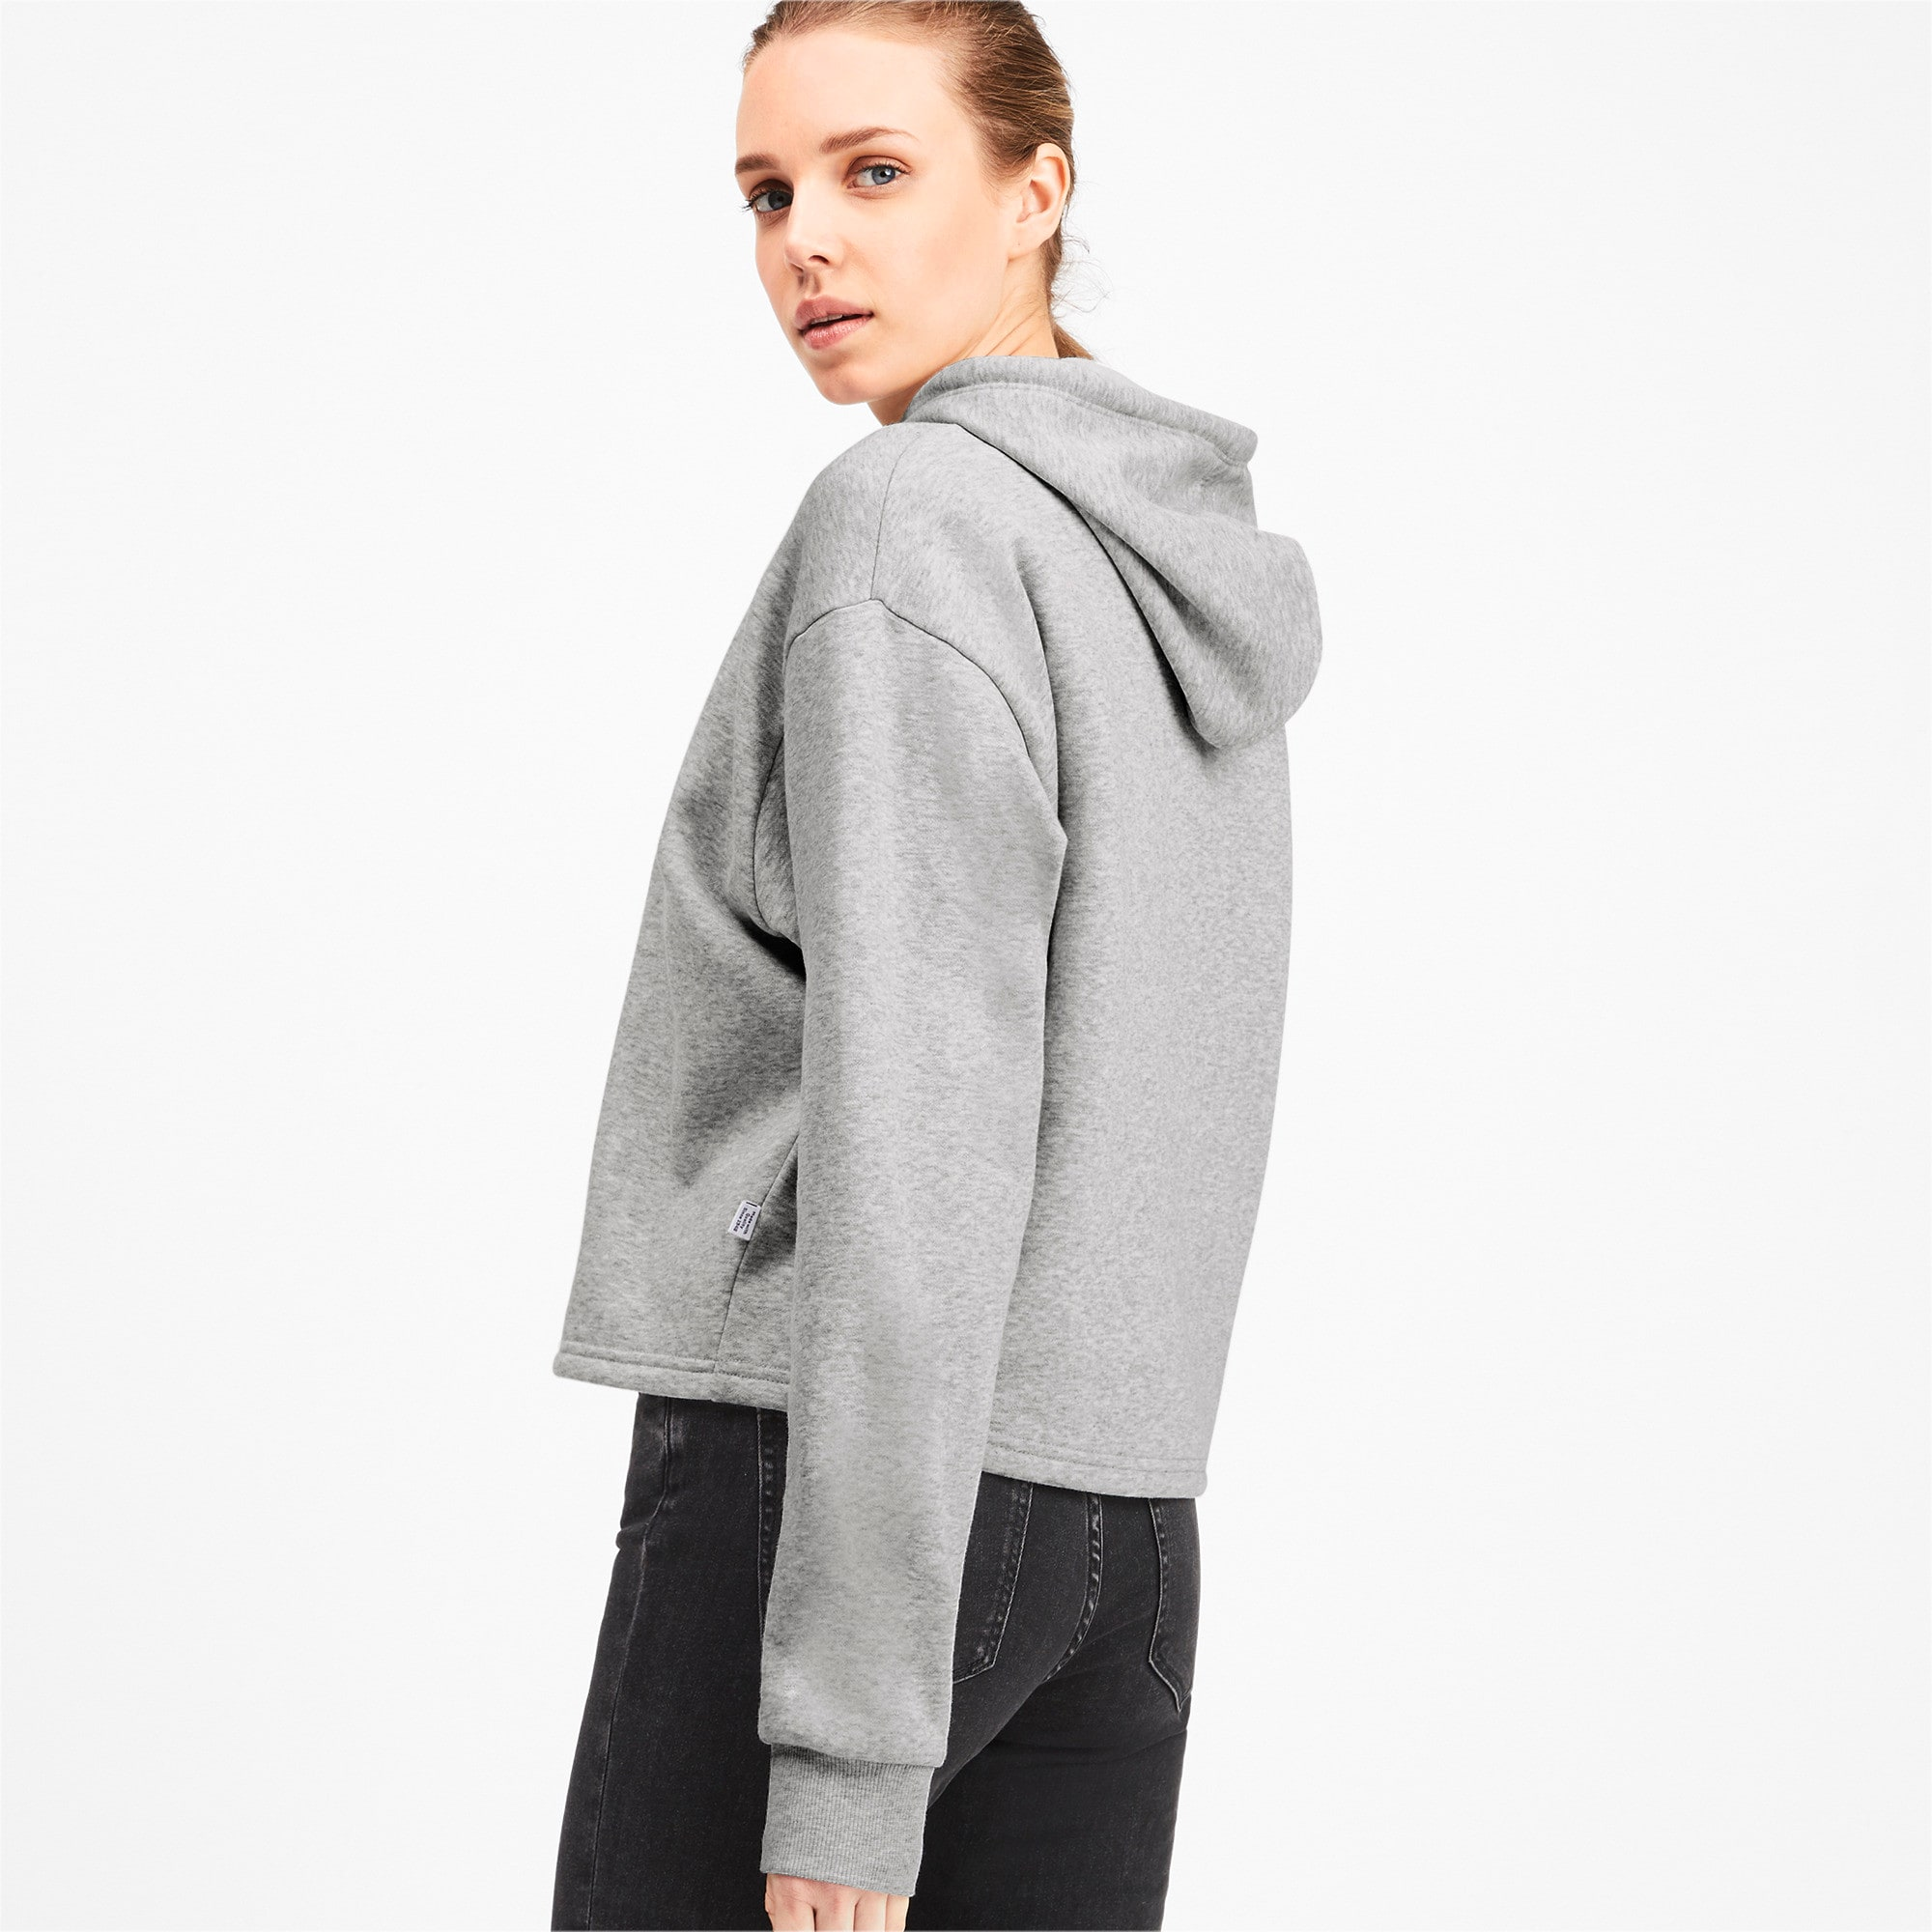 Thumbnail 2 of Elevated Essentials Cropped Women's Hoodie, Light Gray Heather, medium